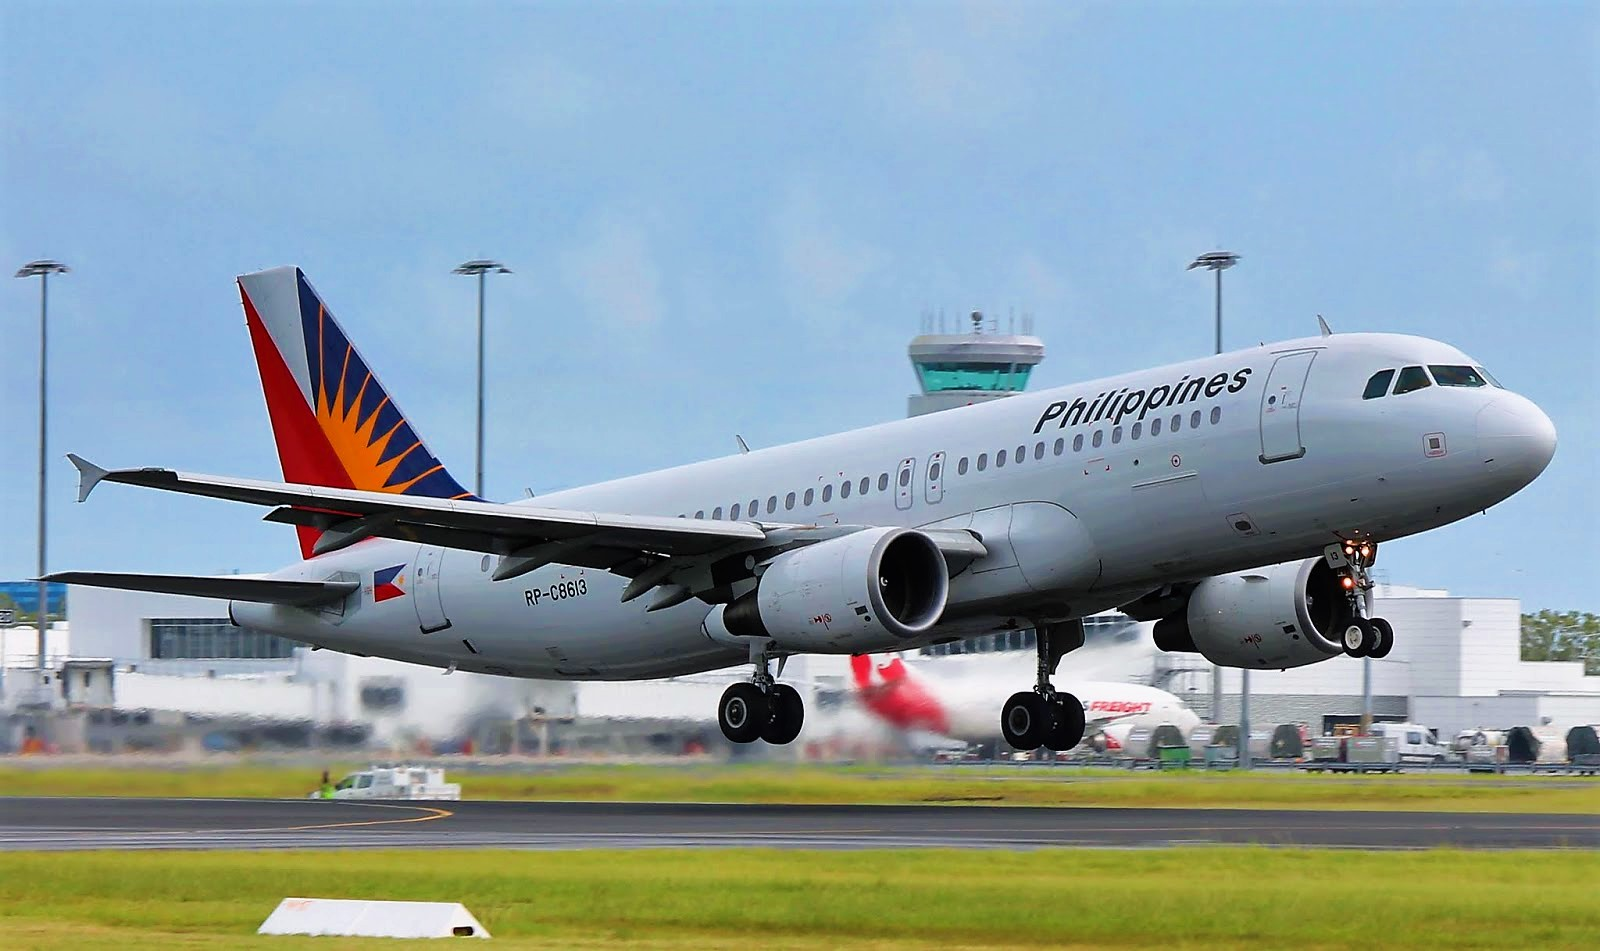 PAL flight from Manila to Dubai costs Dh1731